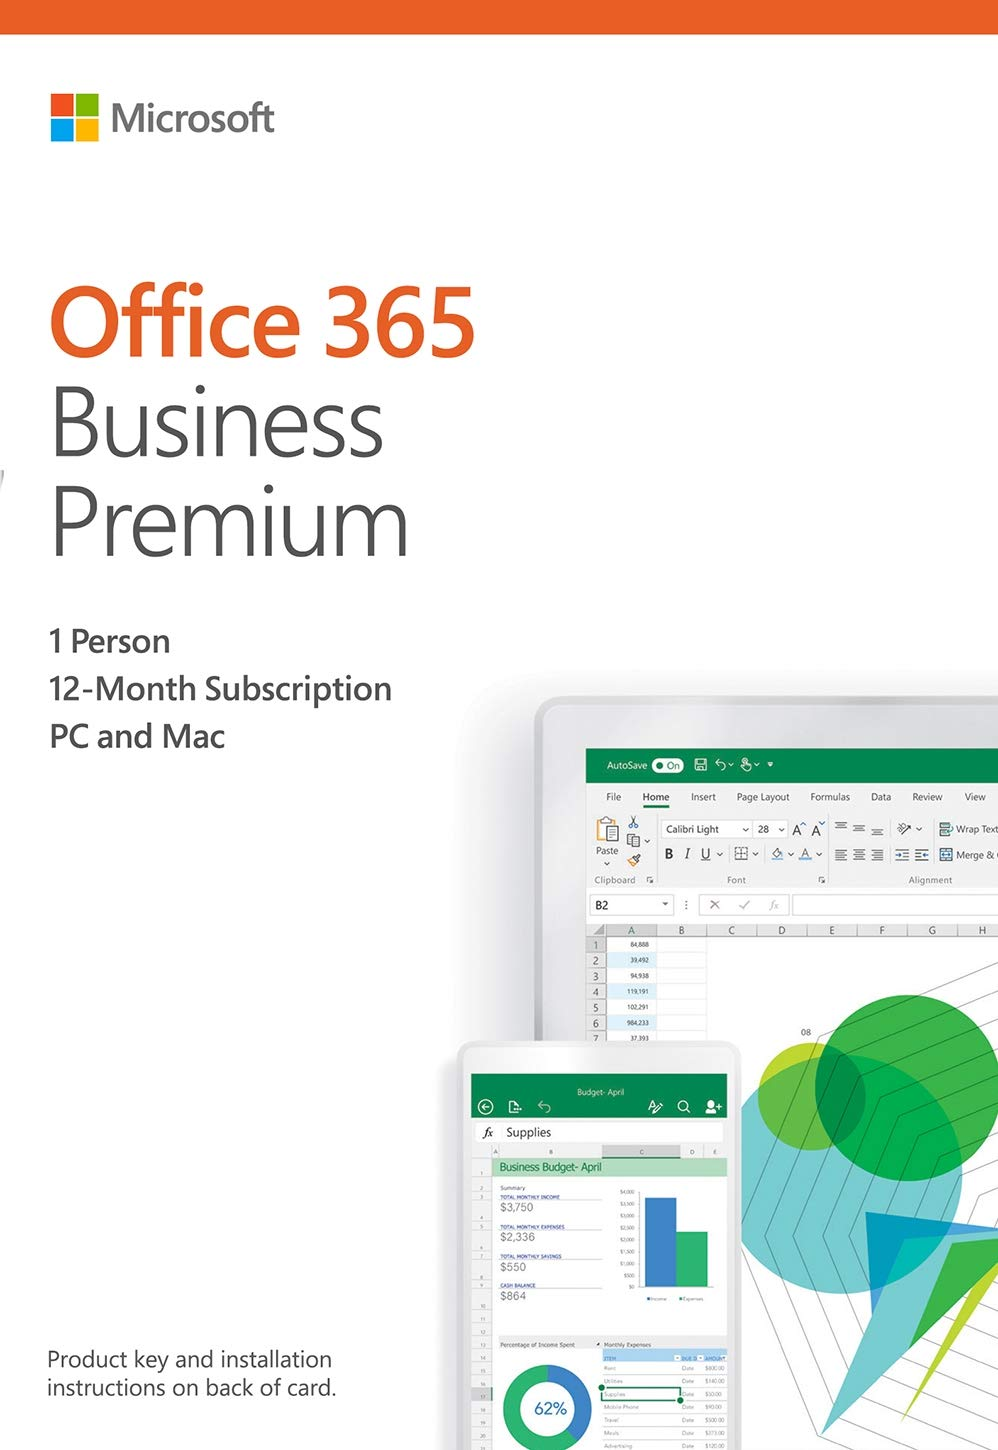 Microsoft Office 365 Business Premium | 12-month subscription, 1 person,  PC/Mac Activation Card by Mail